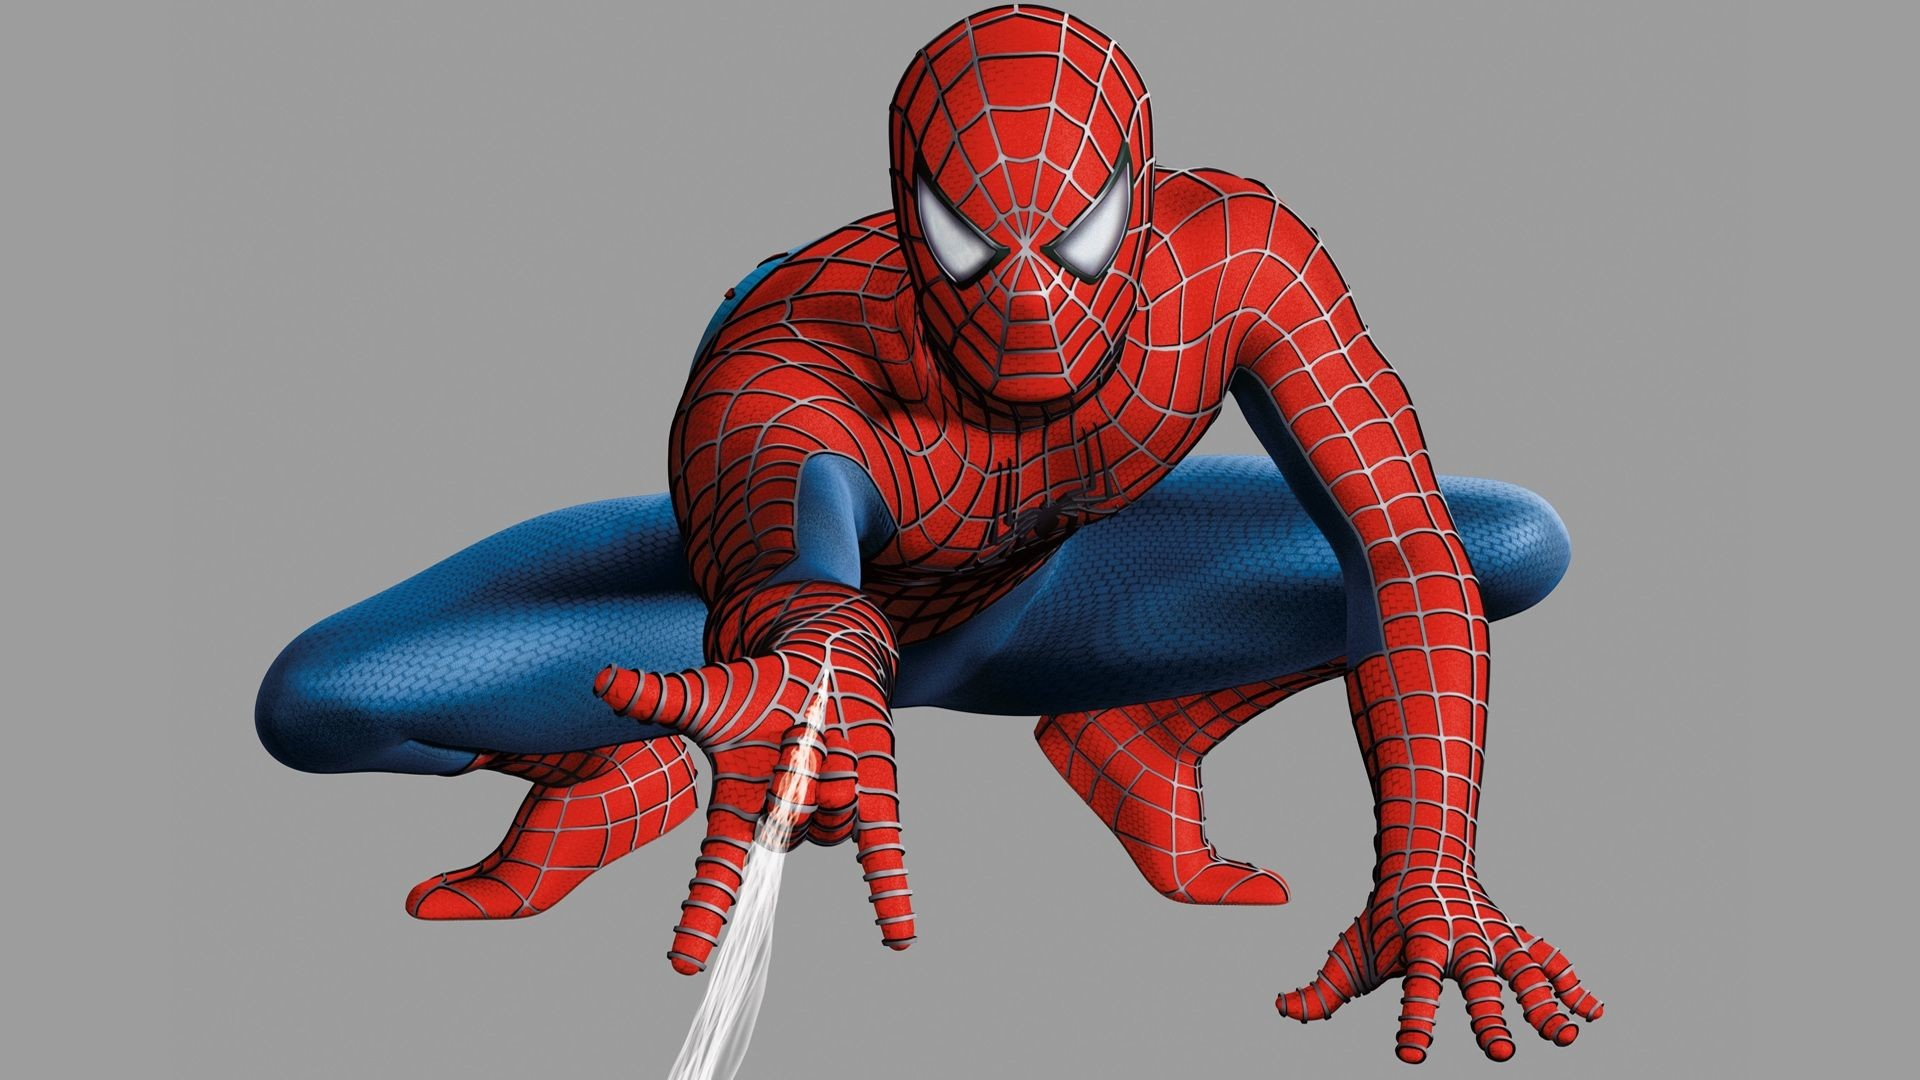 pictures of spiderman wallpapers (65+ images)